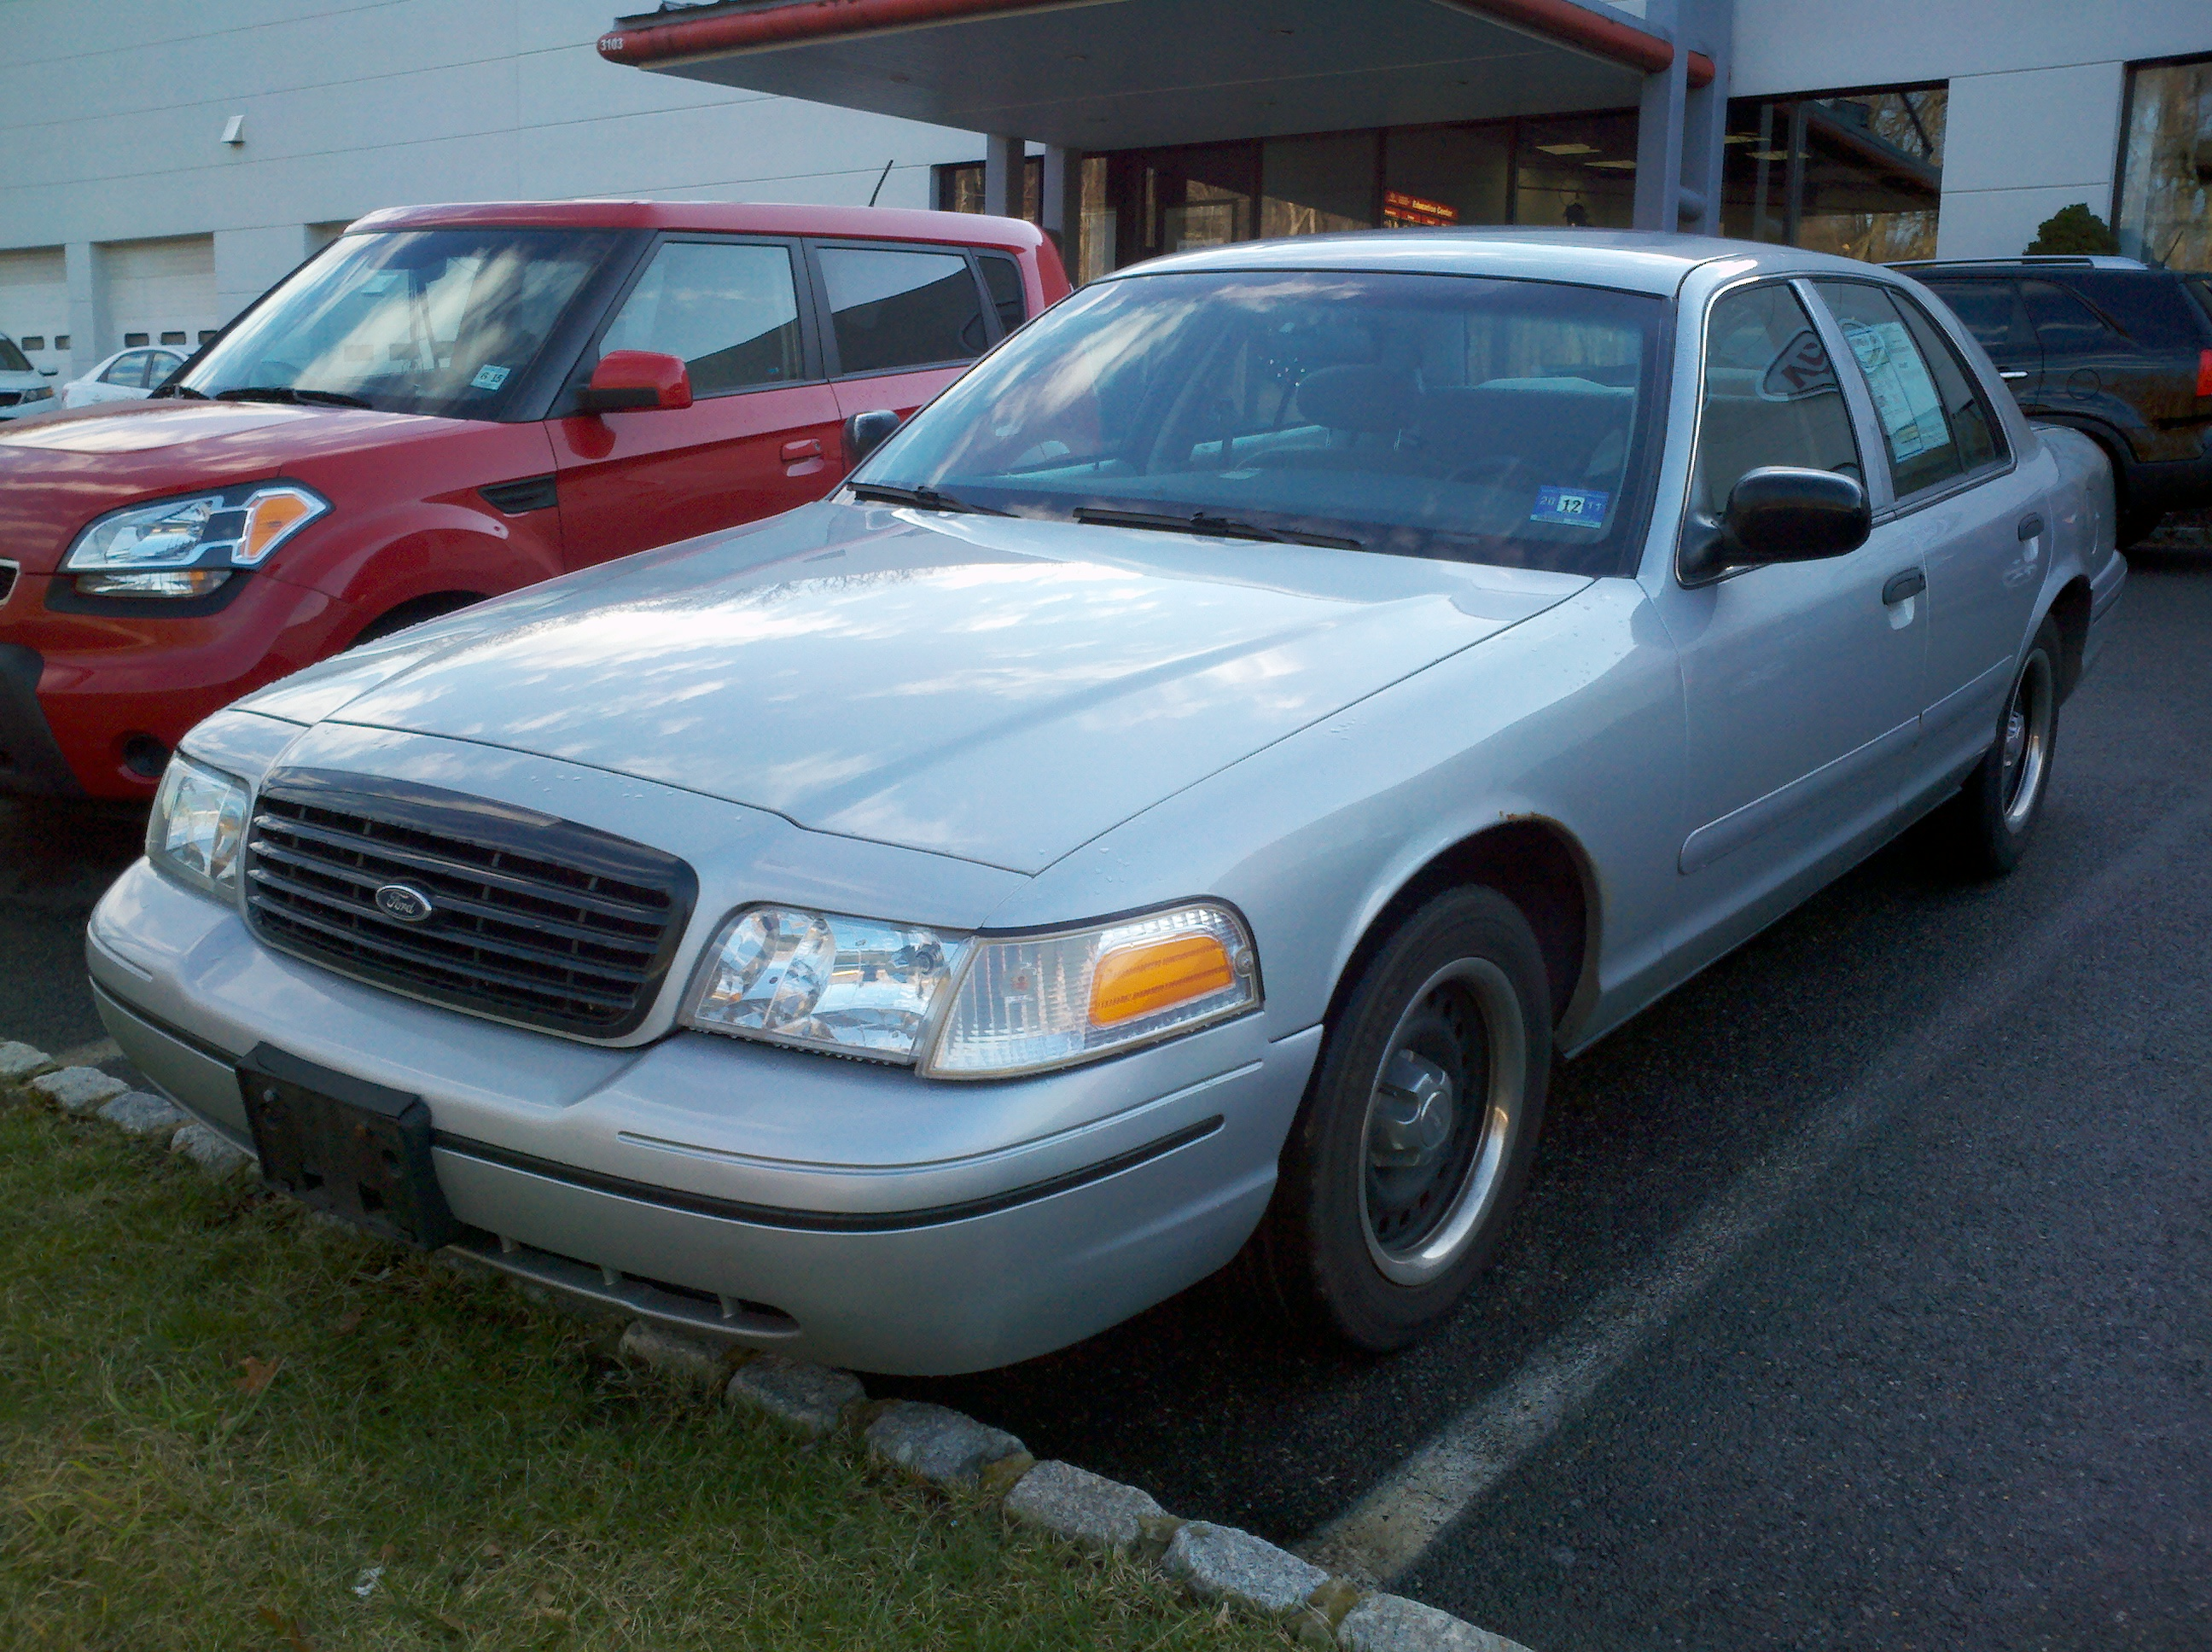 Test Driven: 2000 Ford Crown Victoria Police Interceptor | Mind Over ...